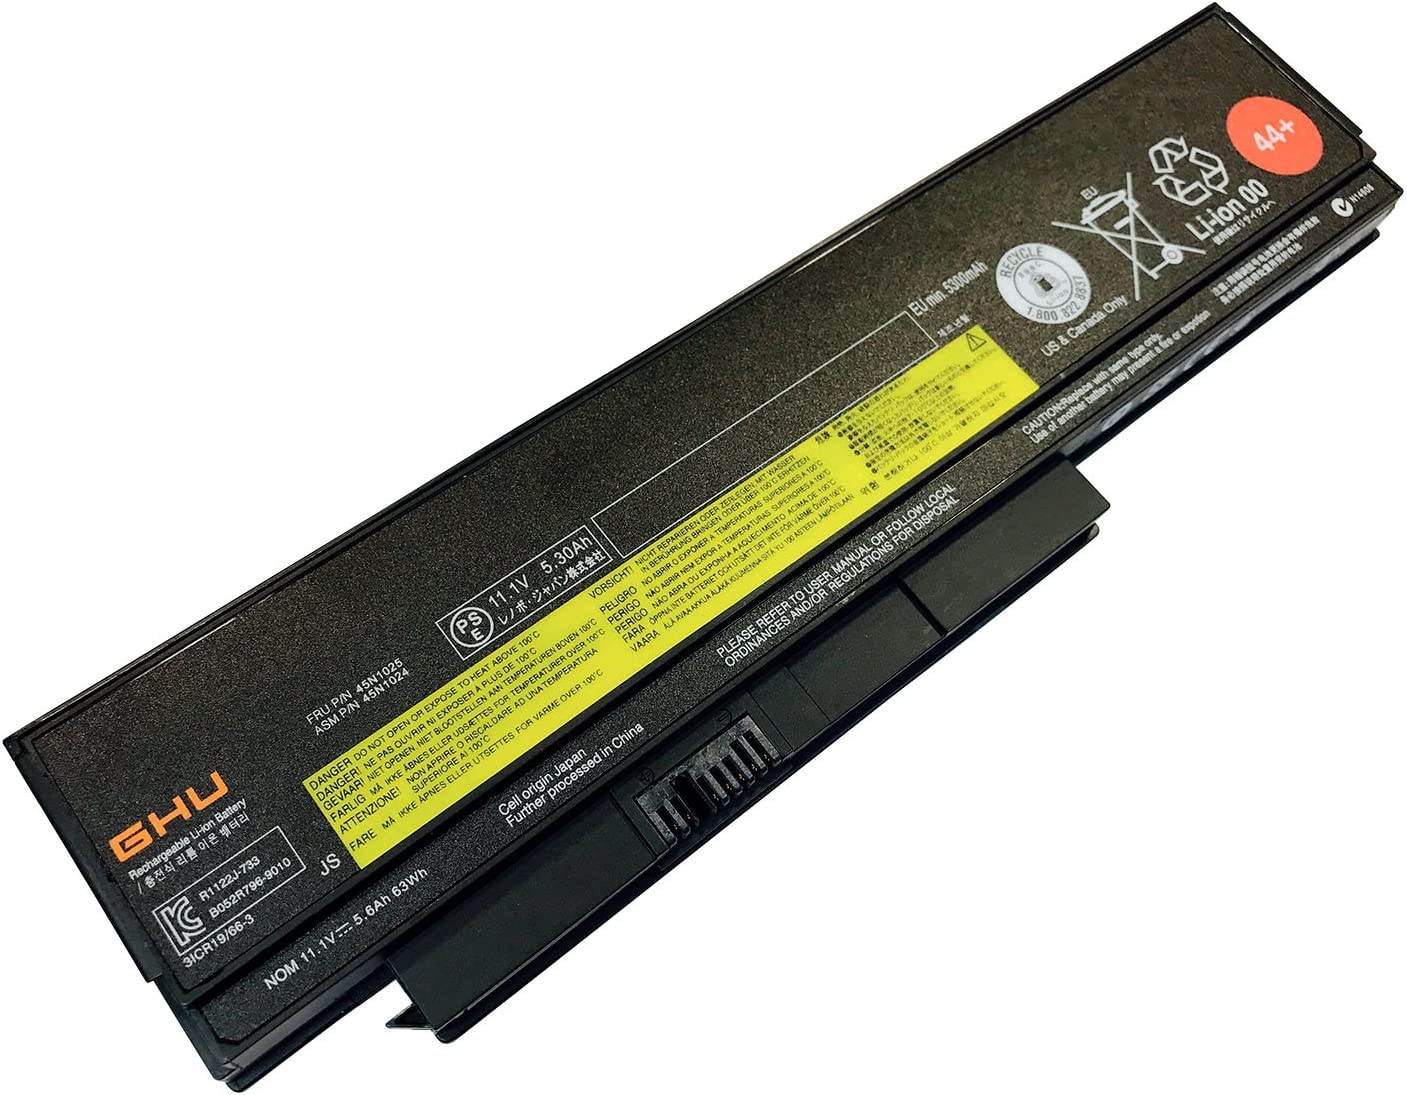 New GHU Battery 44+ 63 WH Replacement for 0A36306 0A36307 0A36305 Compatible for Lenovo ThinkPad X230 X230i X220 X220i 45N1025 45N1027 45N1029 42T4873 42Y4874 42T4901 42T4902 42Y4940 45N1027